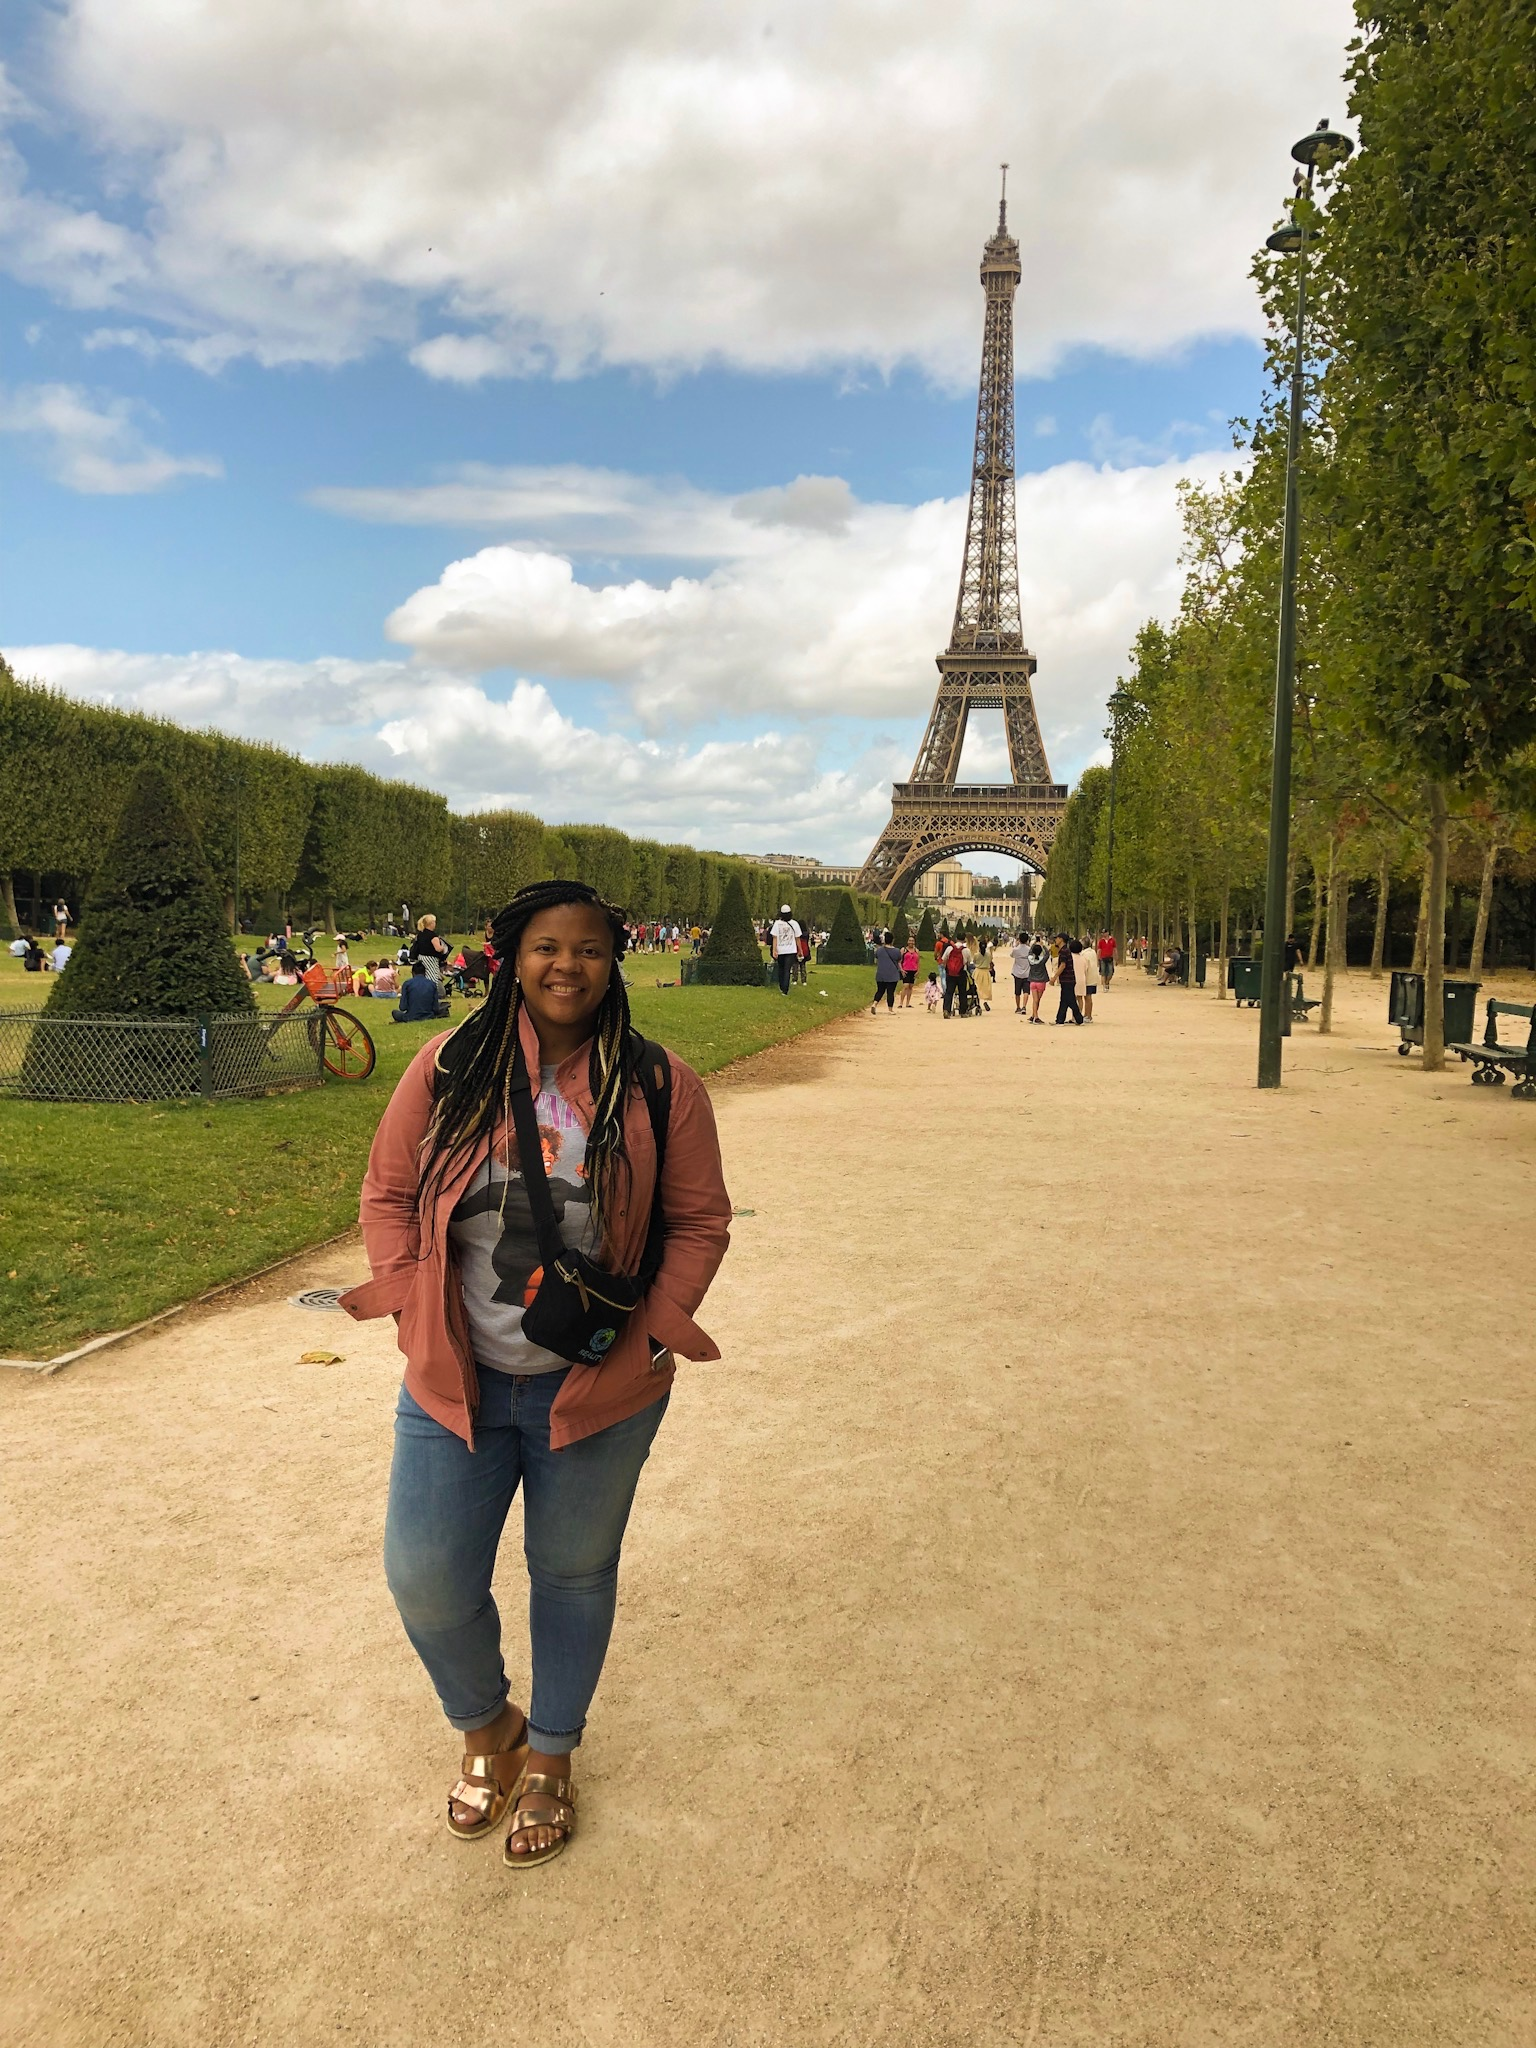 At the Eiffel Tower during my extended layover exploration!